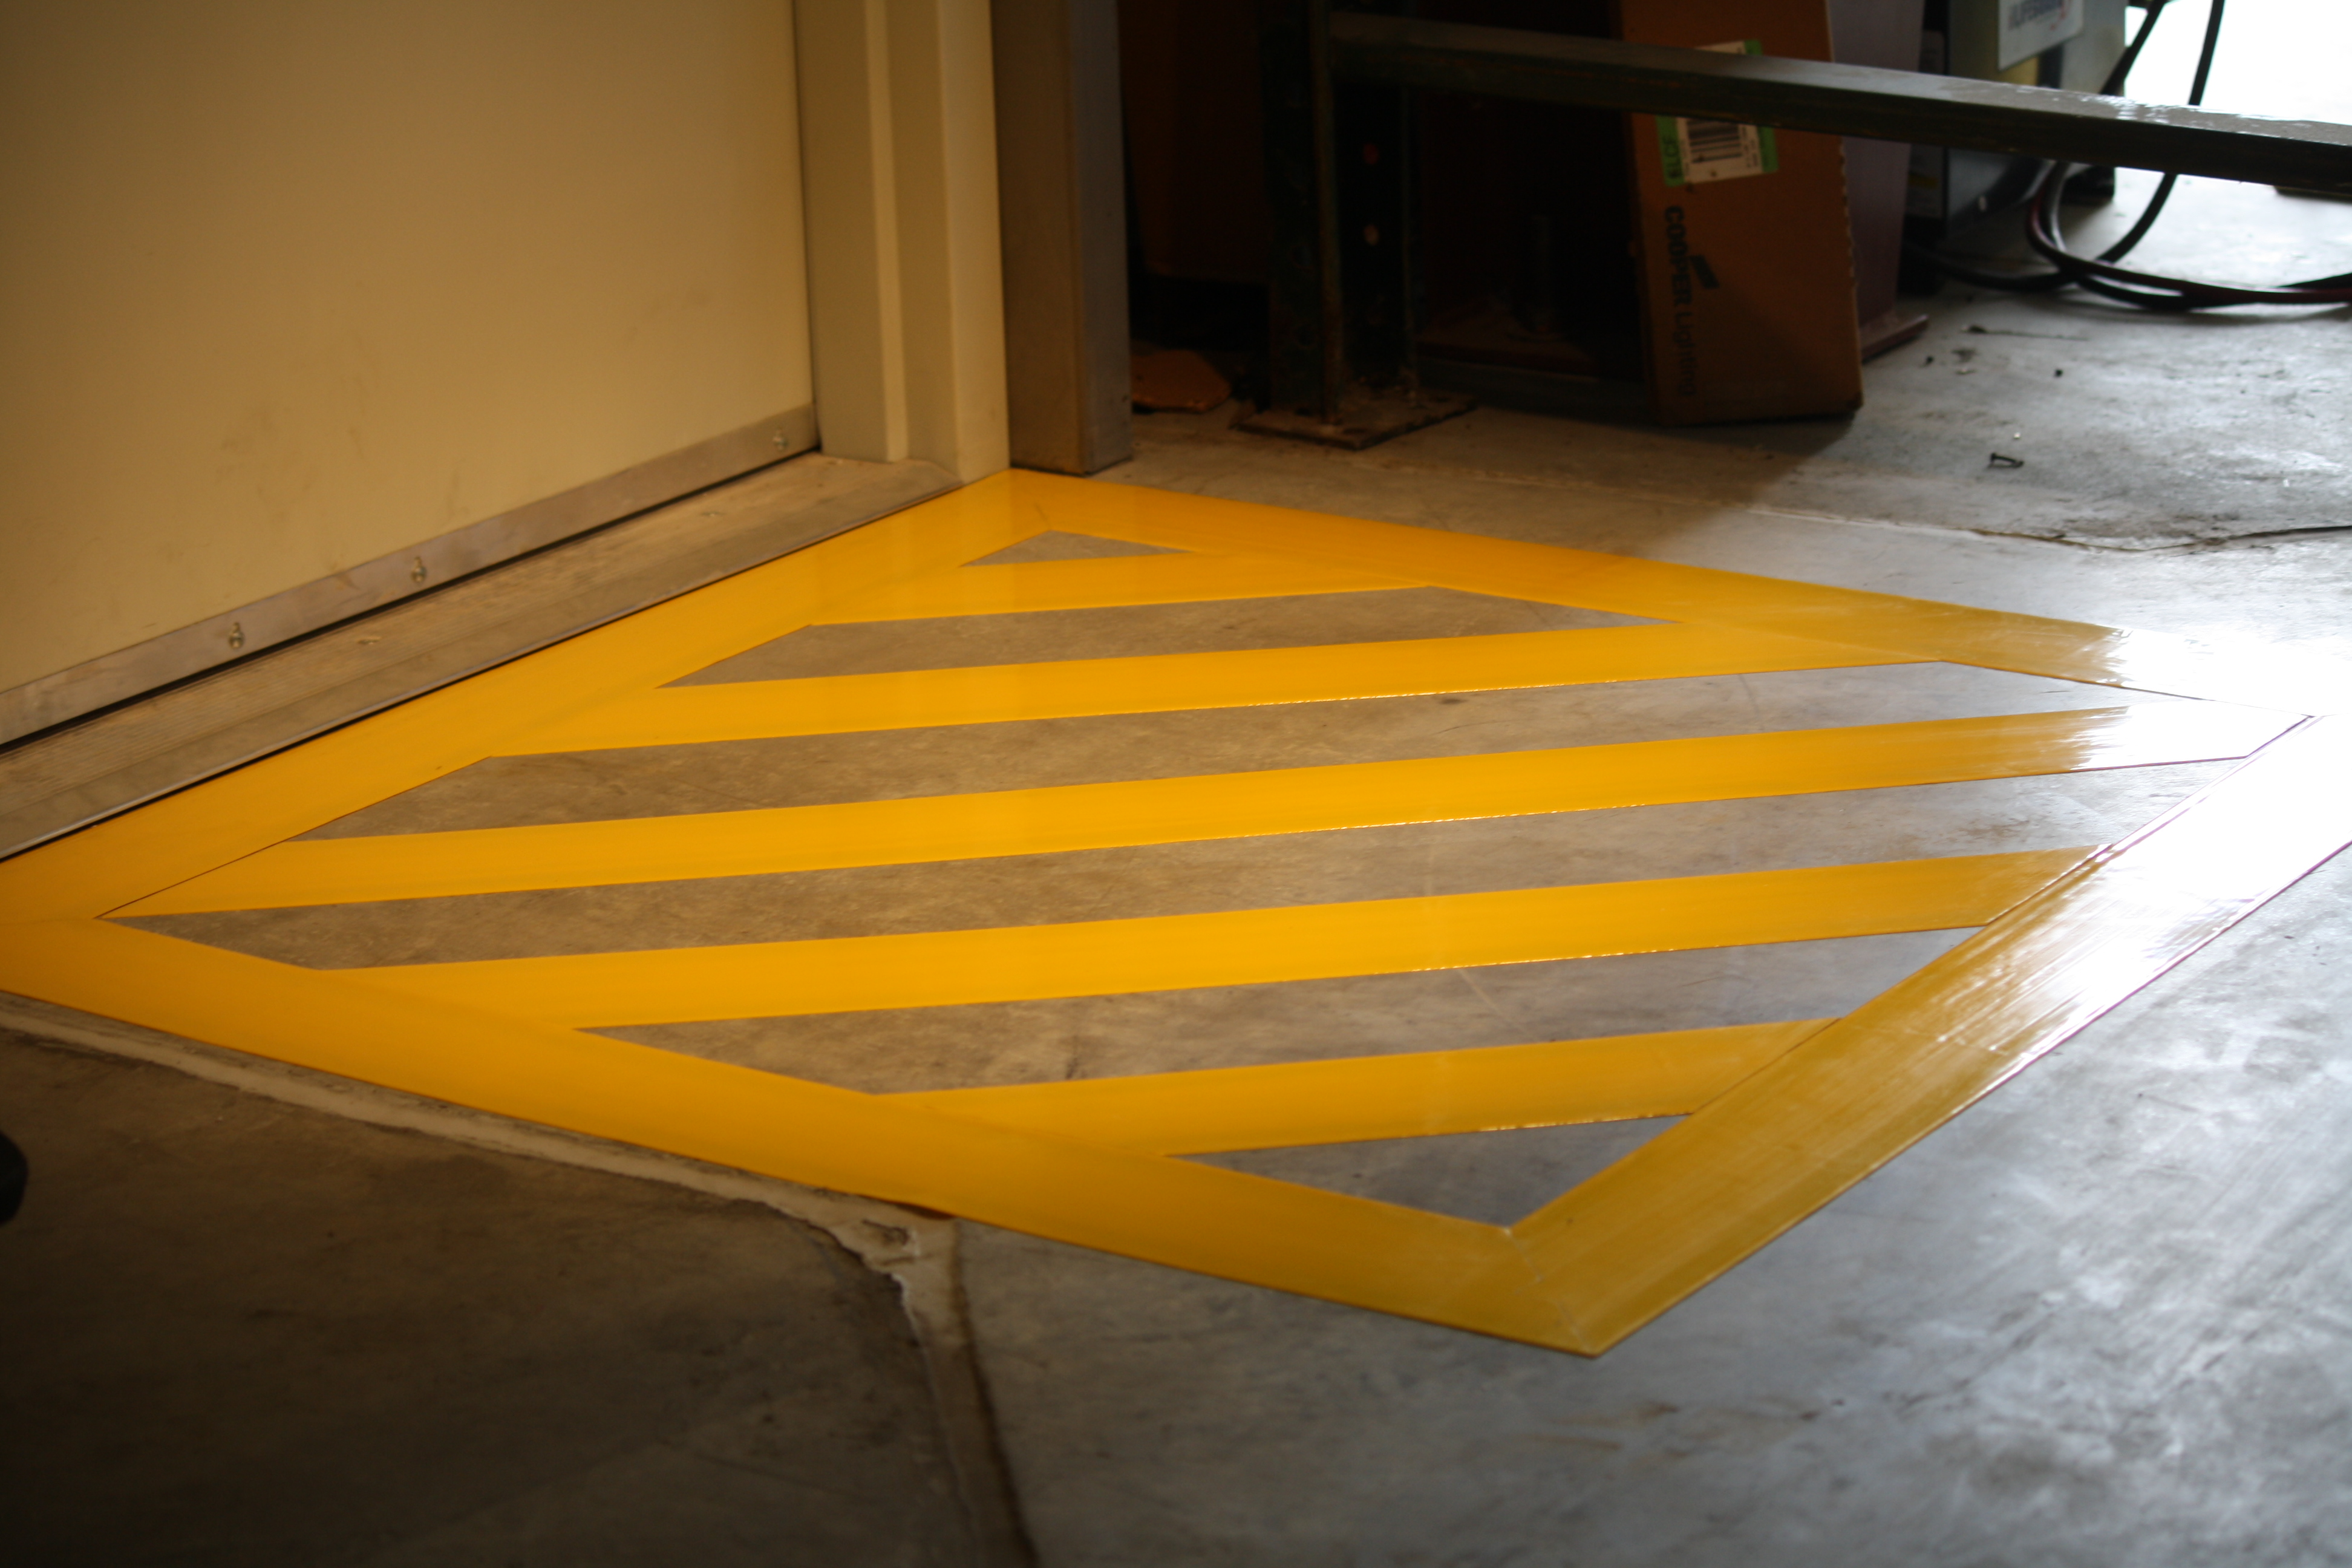 Comblack And Yellow Floor Tape : Comblack And Yellow Floor Tape : Superior Mark Floor Marking Tapes